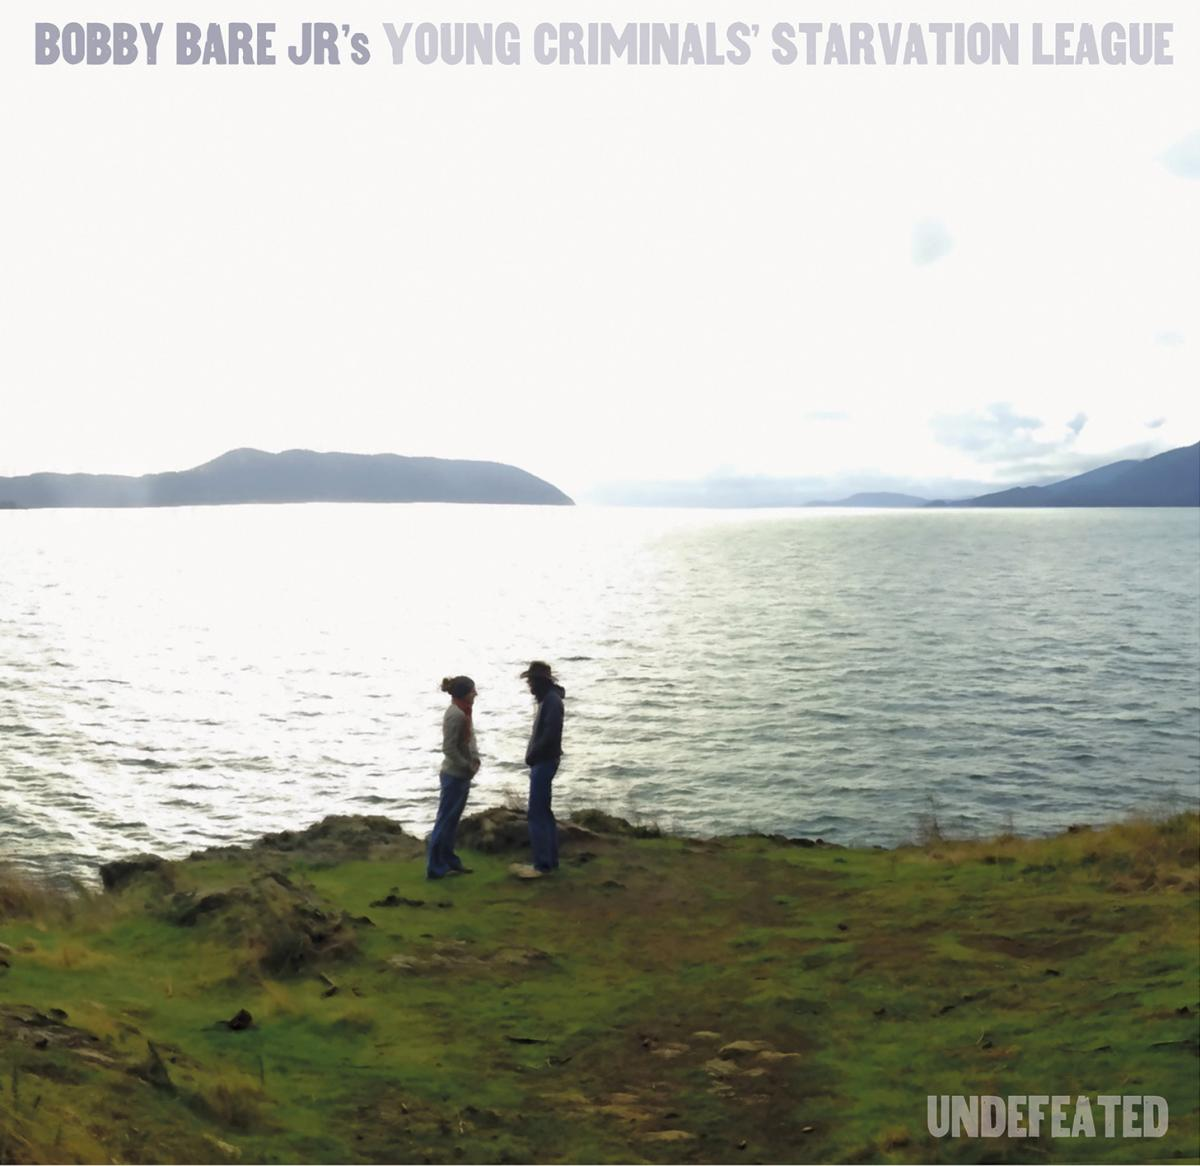 03-12-Discs-Bobby-Bare-Jr.s-Young-Criminals-Starvation-League-Undefeated